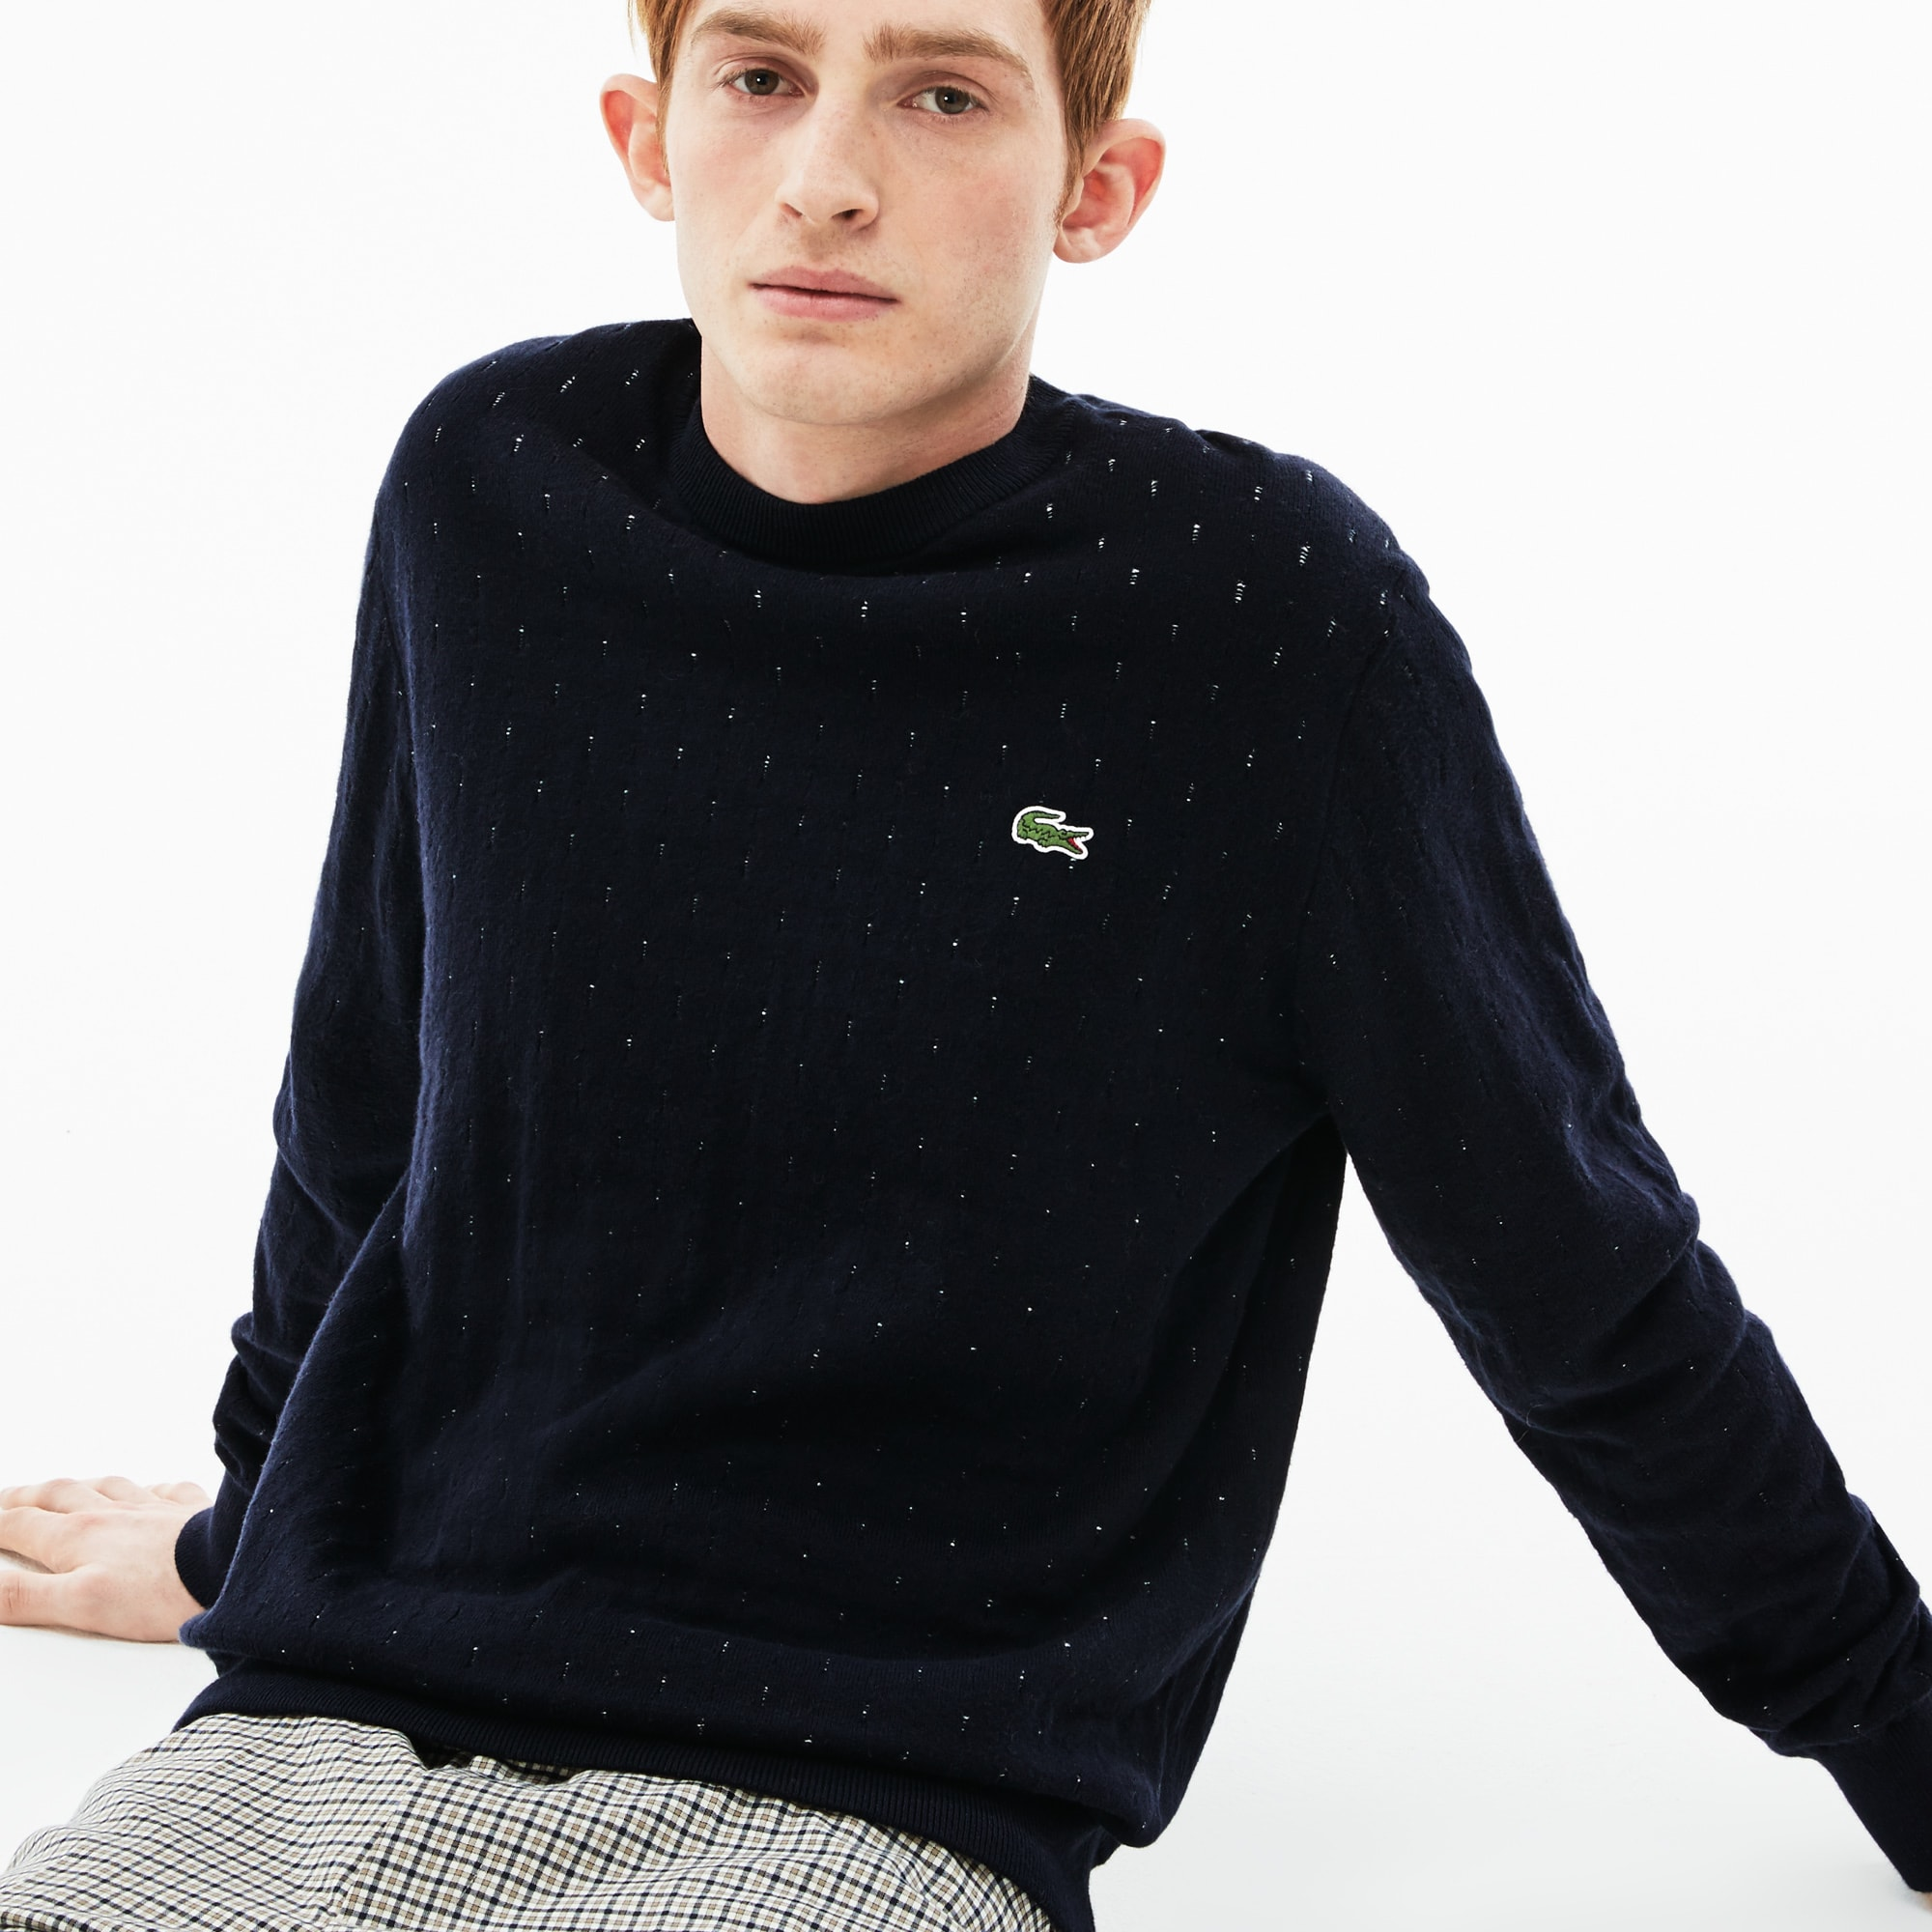 Lacoste Crew Men's Sweater Live Neck Cotton And Cashmere Jacquard ucTK1JlF35